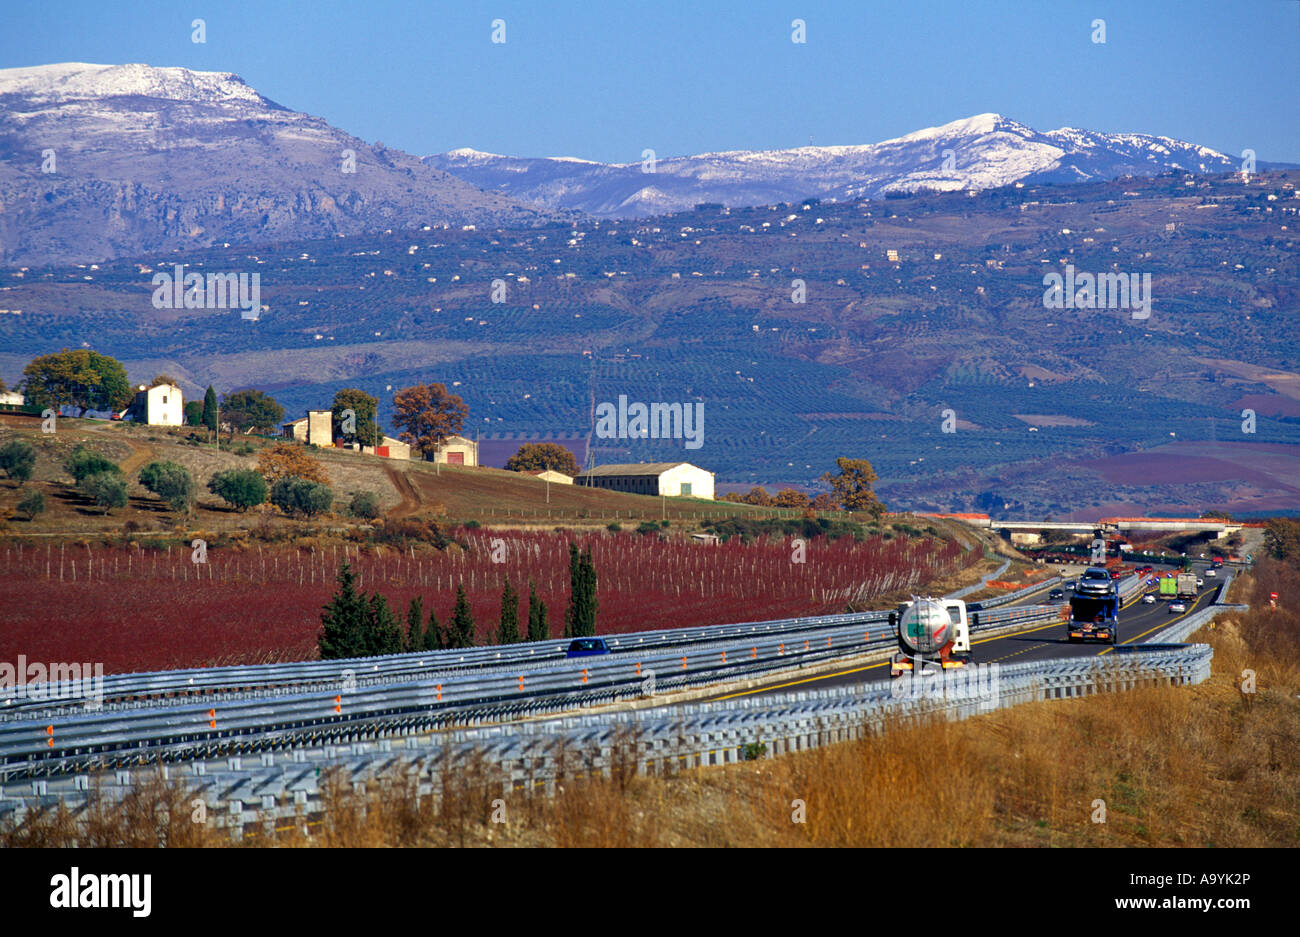 Freeway Strada del Sole and village with snow capped Pollino mountains, Calabria, Italy - Stock Image